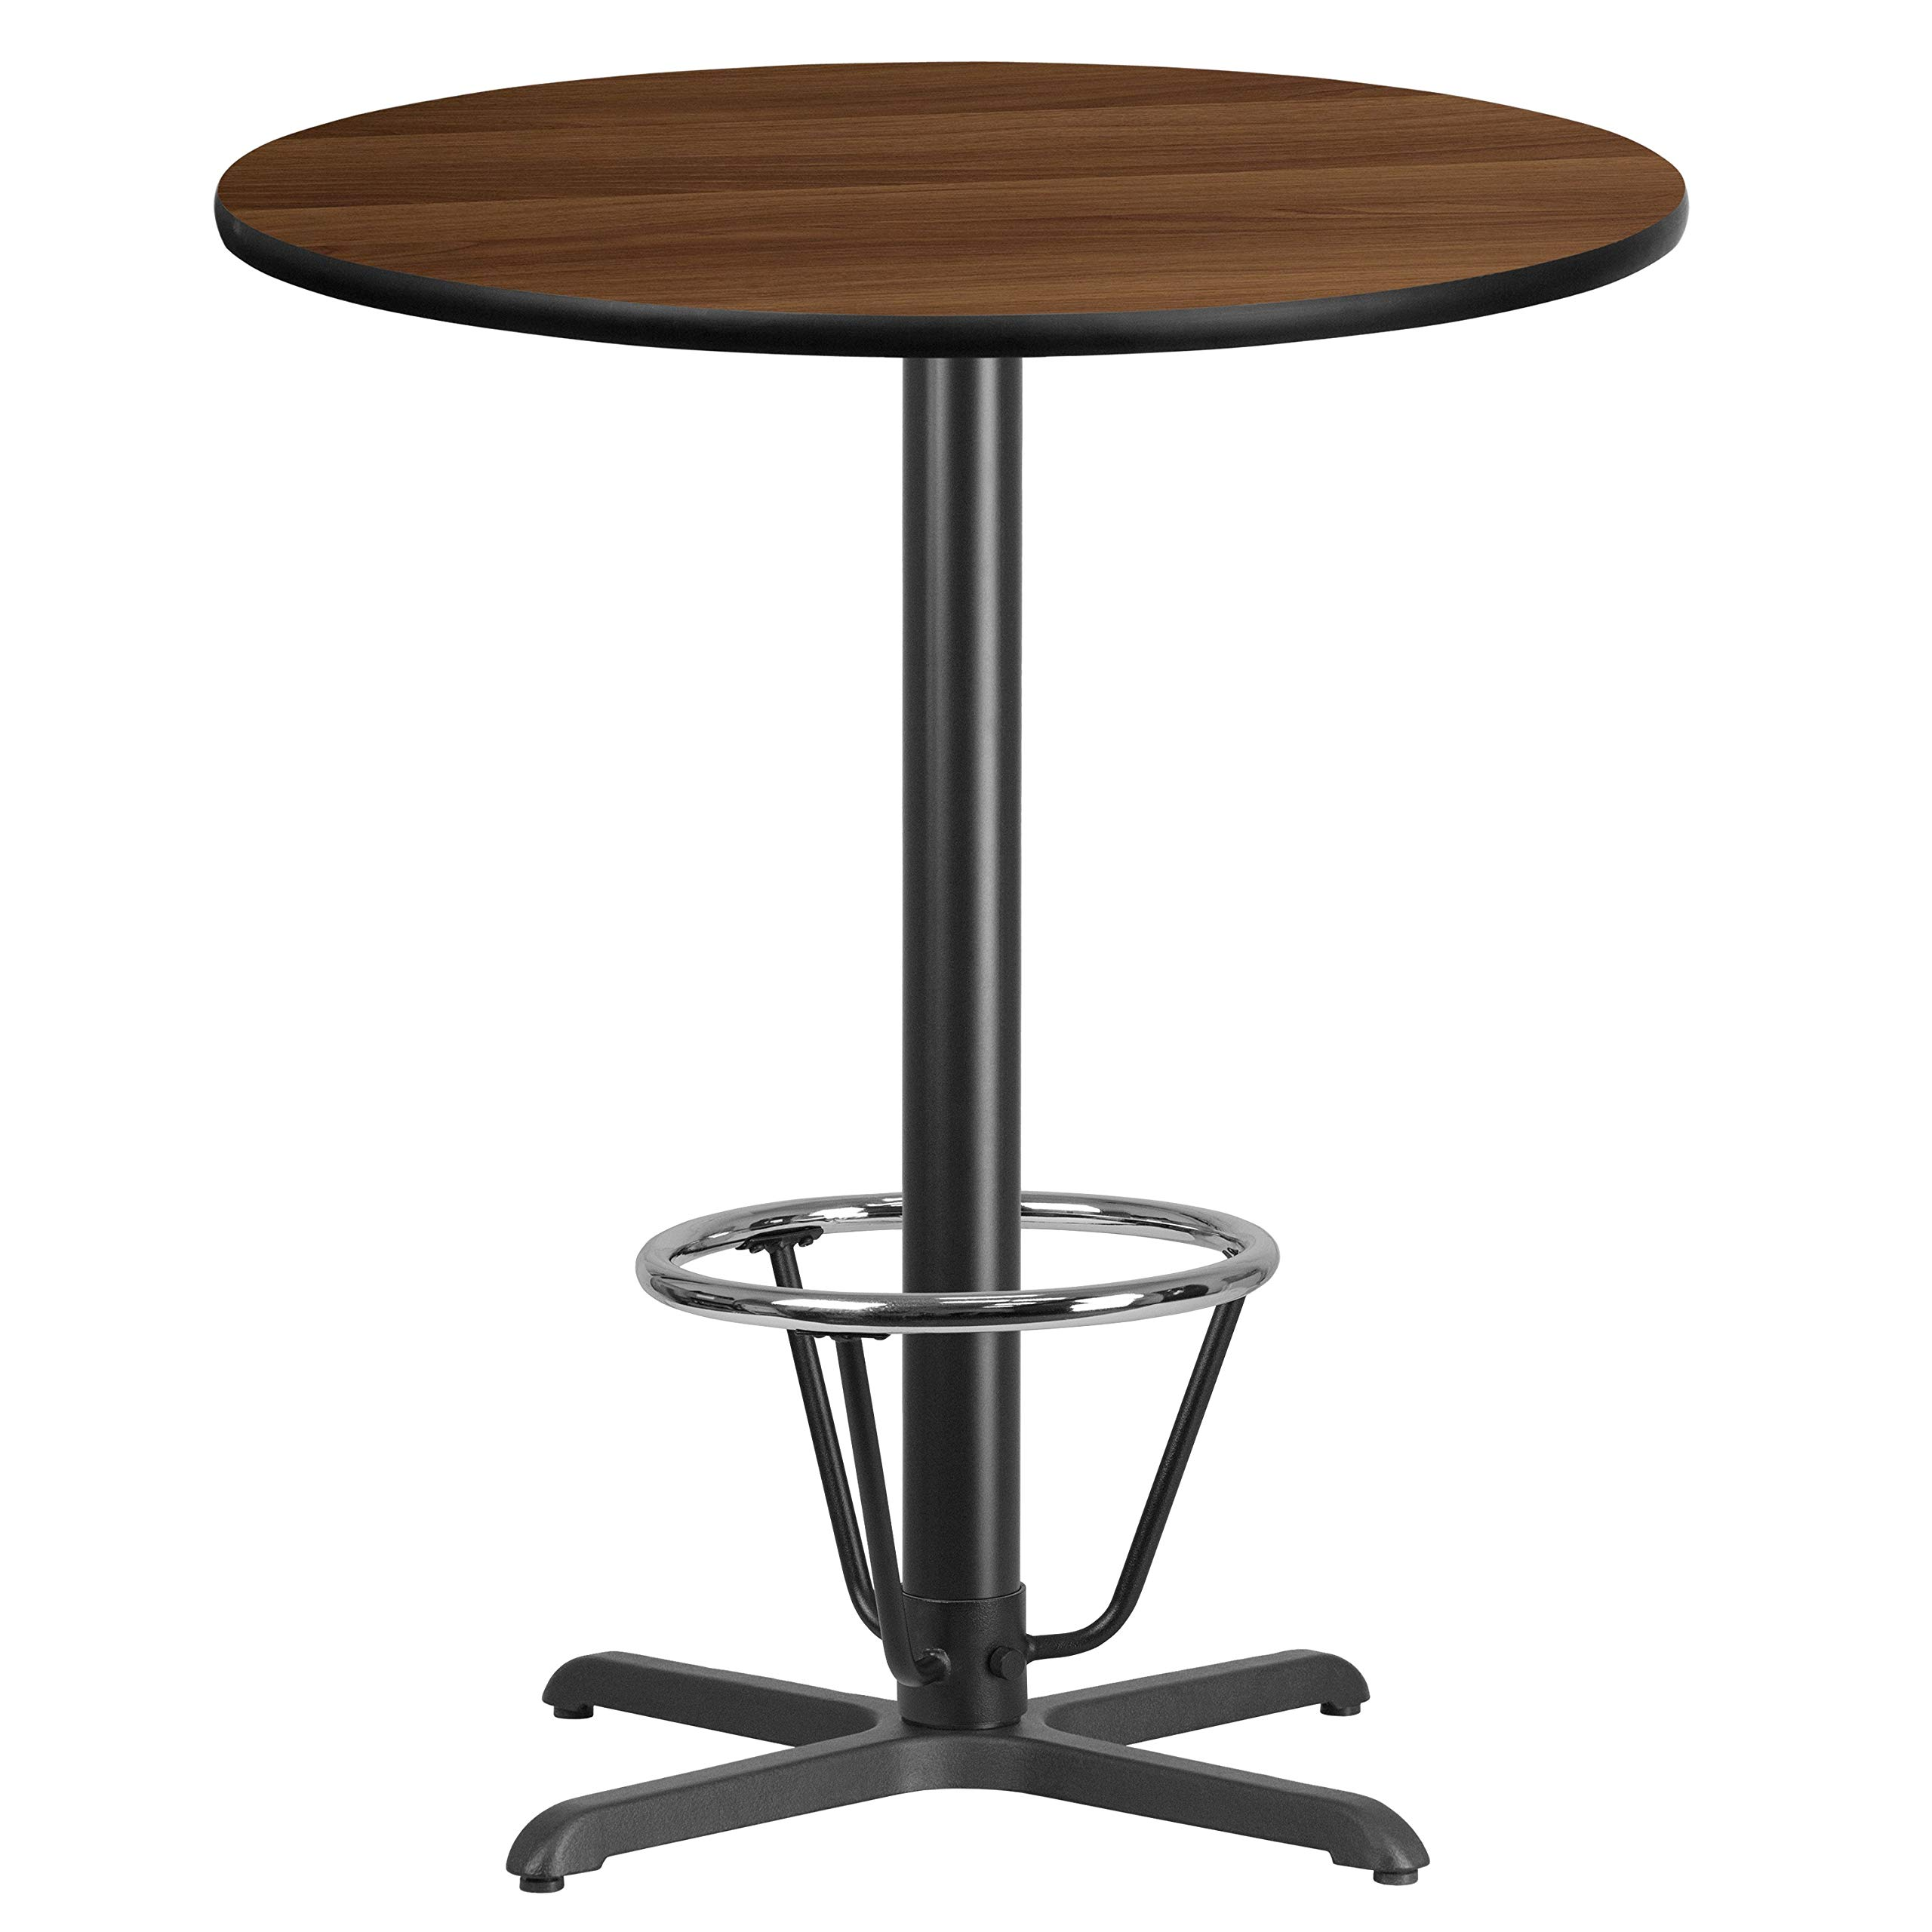 MFO 36'' Round Walnut Laminate Table Top with 30'' x 30'' Bar Height Table Base and Foot Ring by My Friendly Office